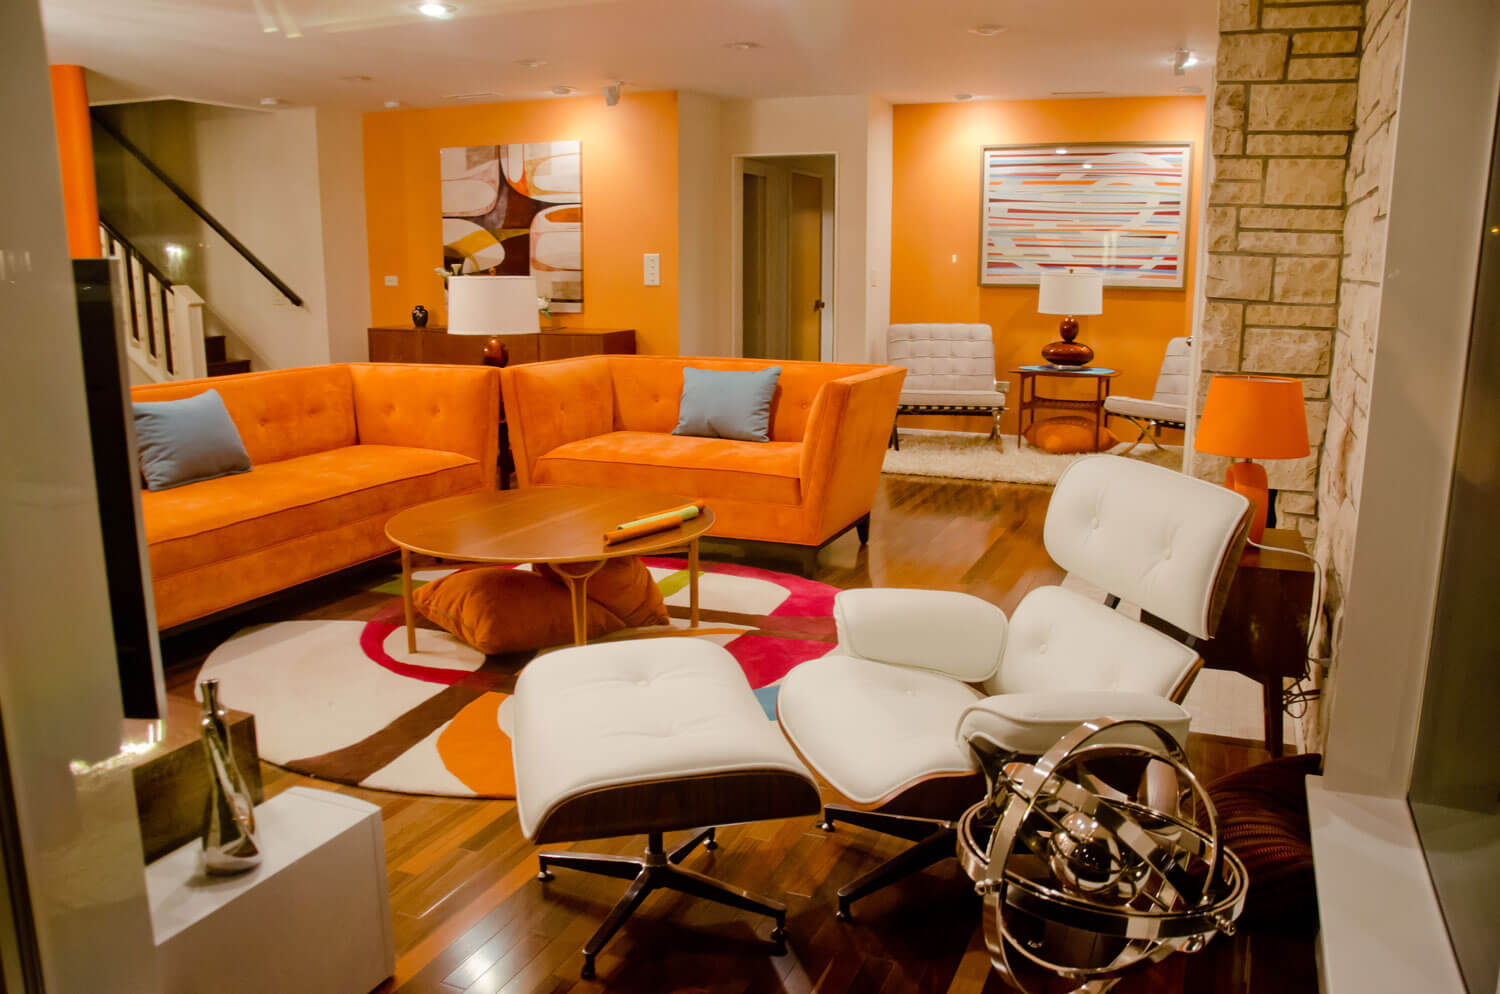 Living Room Ideas Orange Sofa 124+ great living room ideas and designs - photo gallery - home